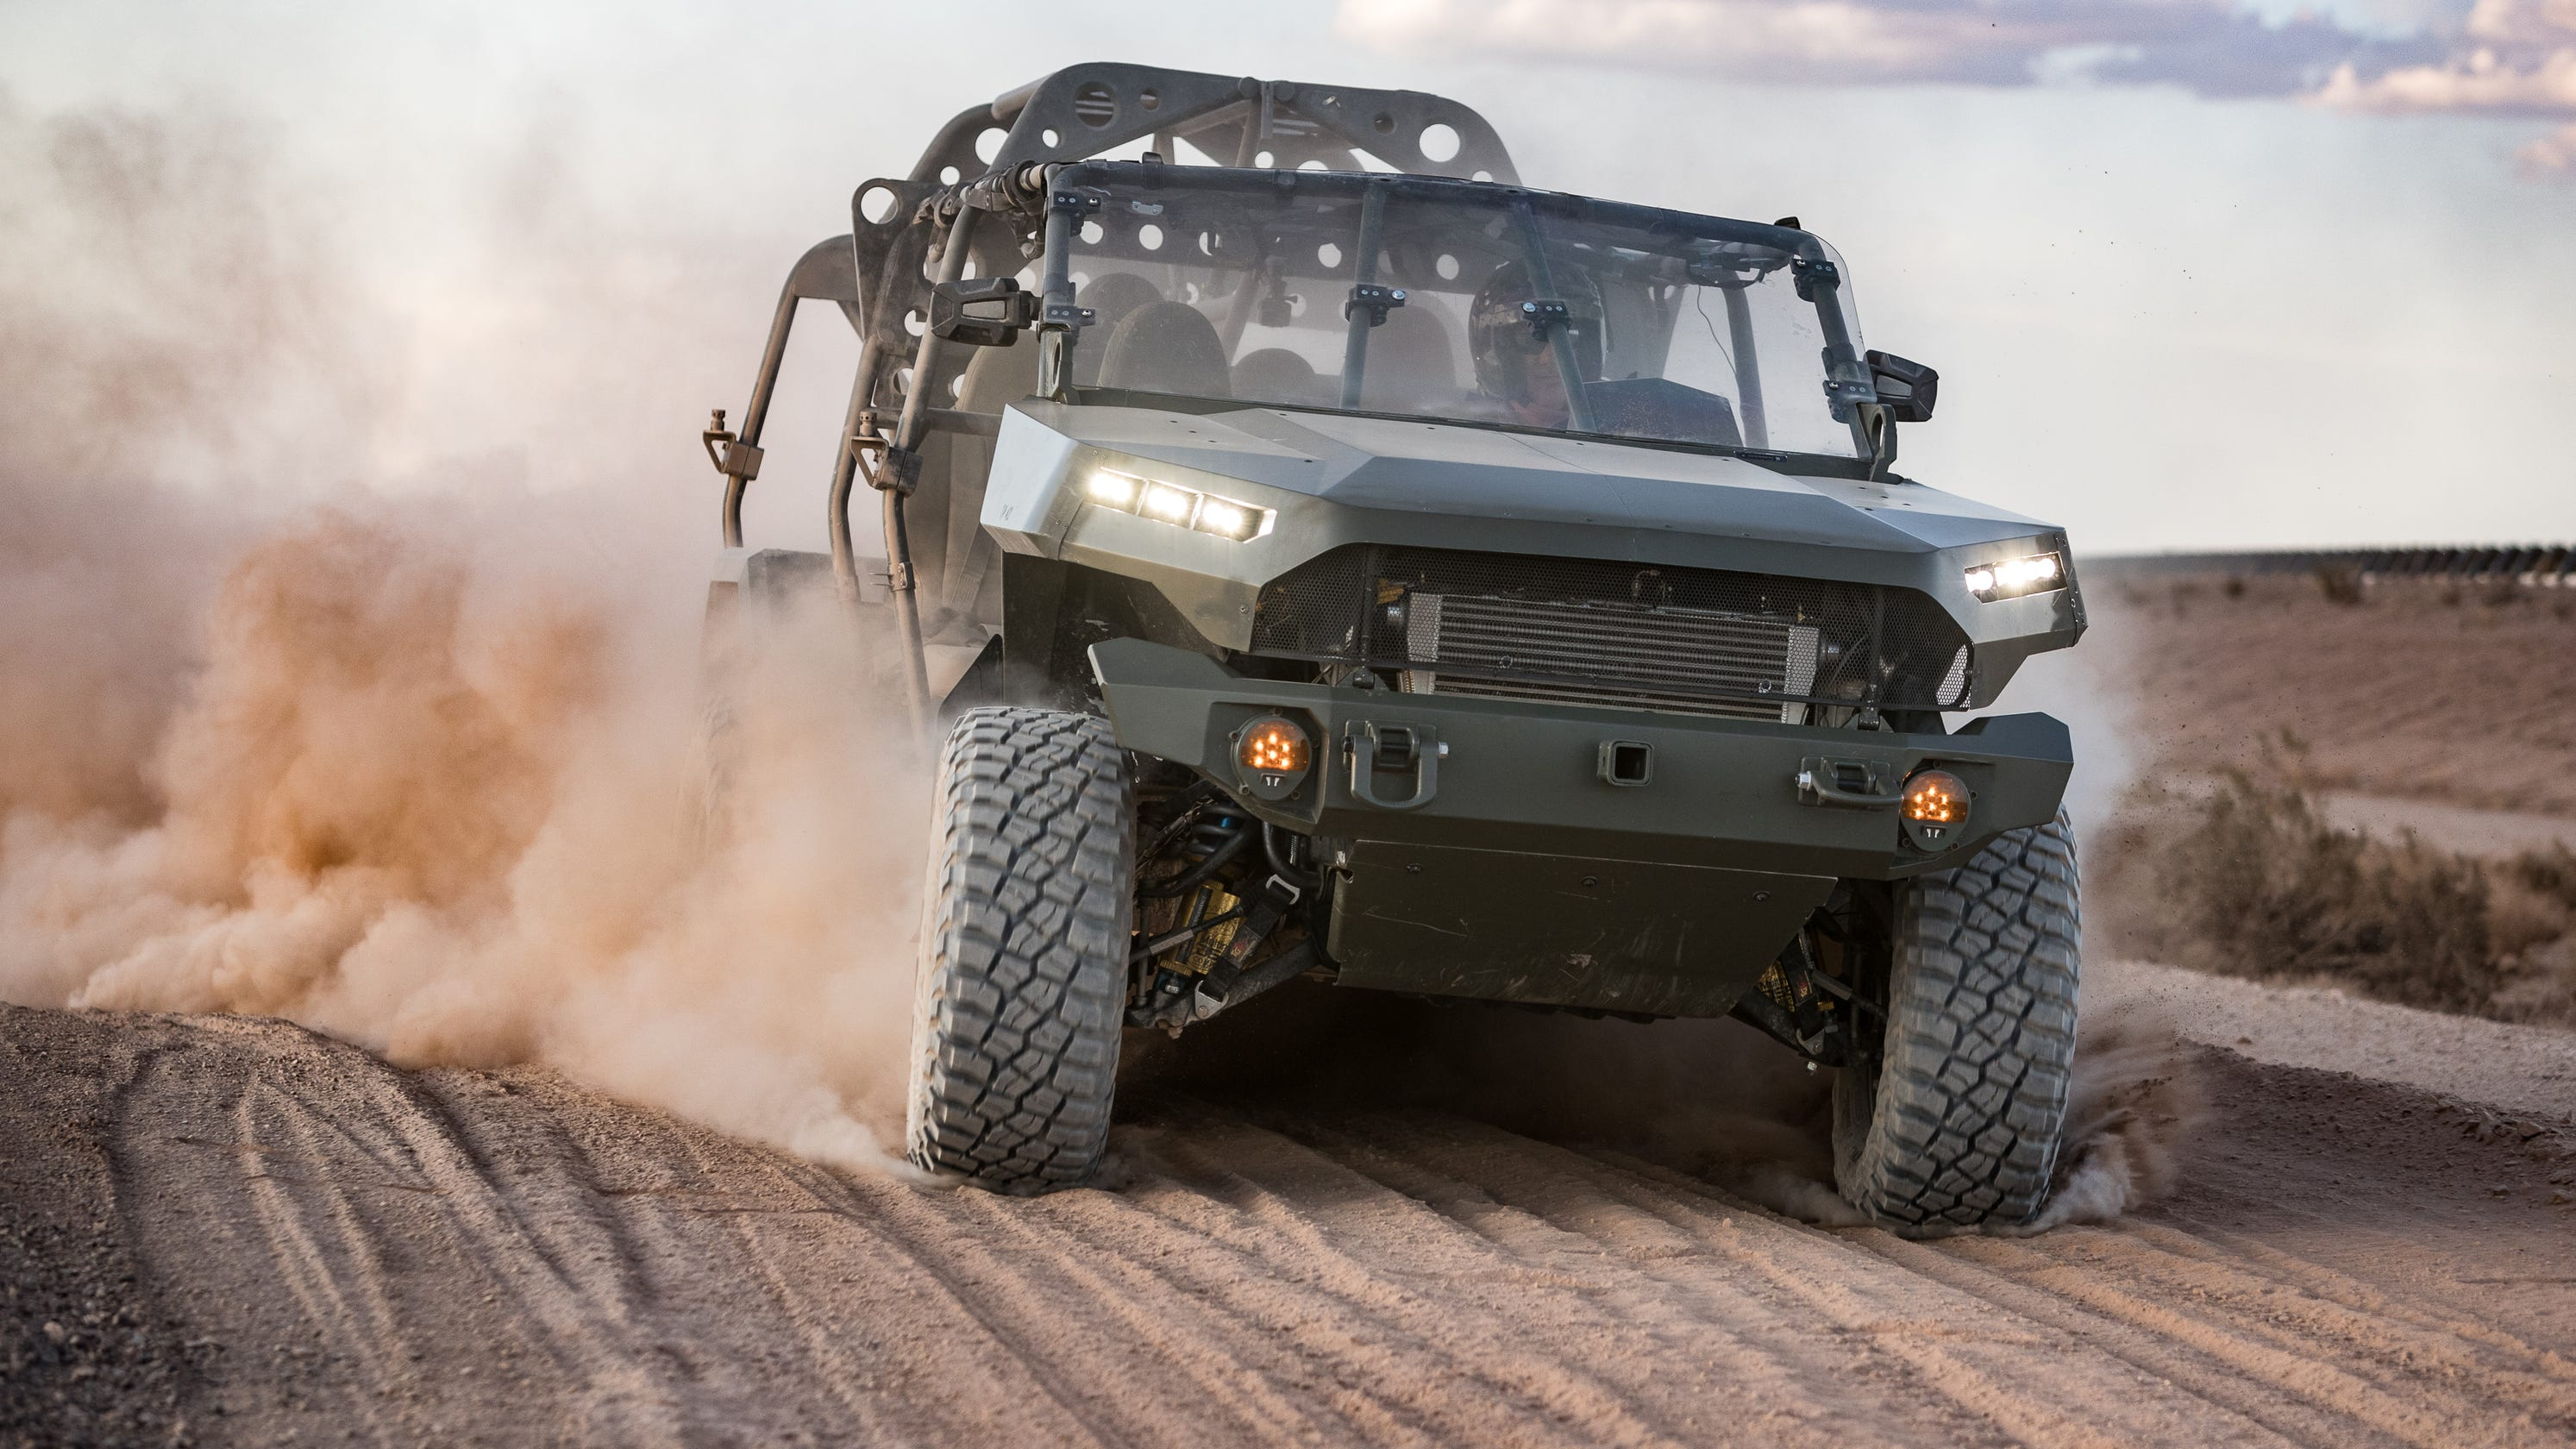 General Motors scores big $214.3M Army contract to provide troop carrier